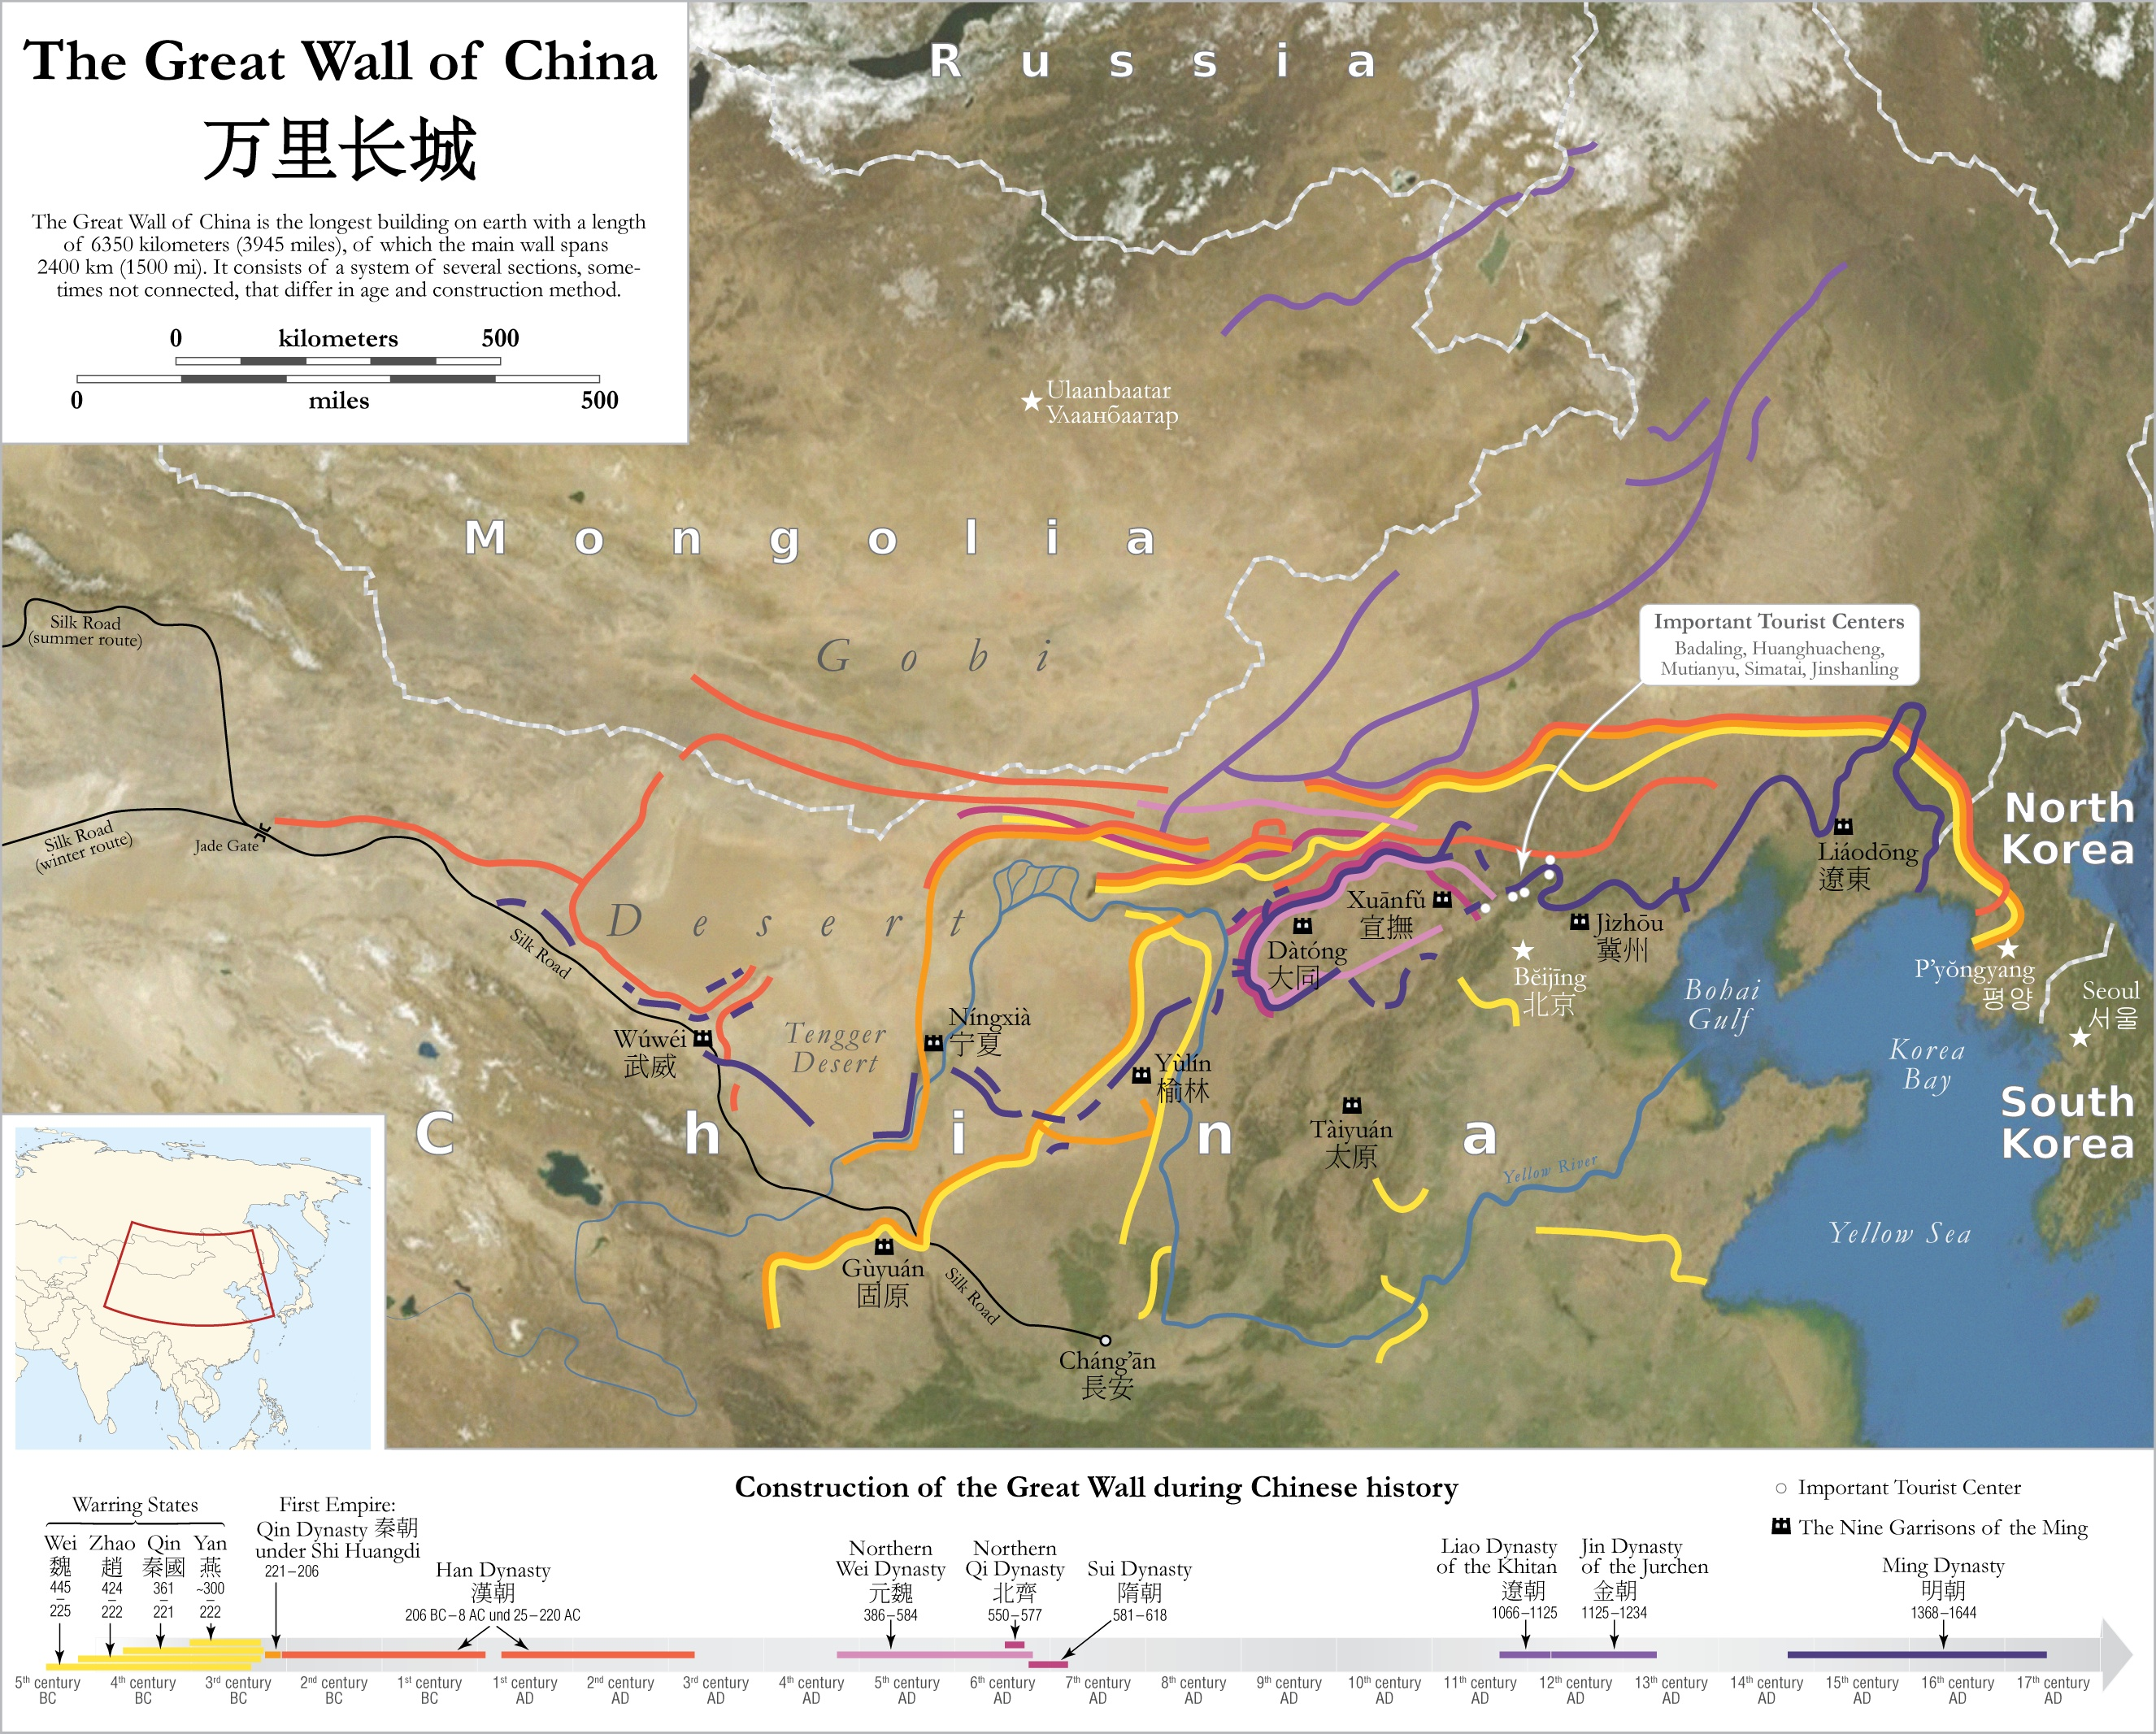 Great Wall Of China Map File:Map of the Great Wall of China.   Wikimedia Commons Great Wall Of China Map